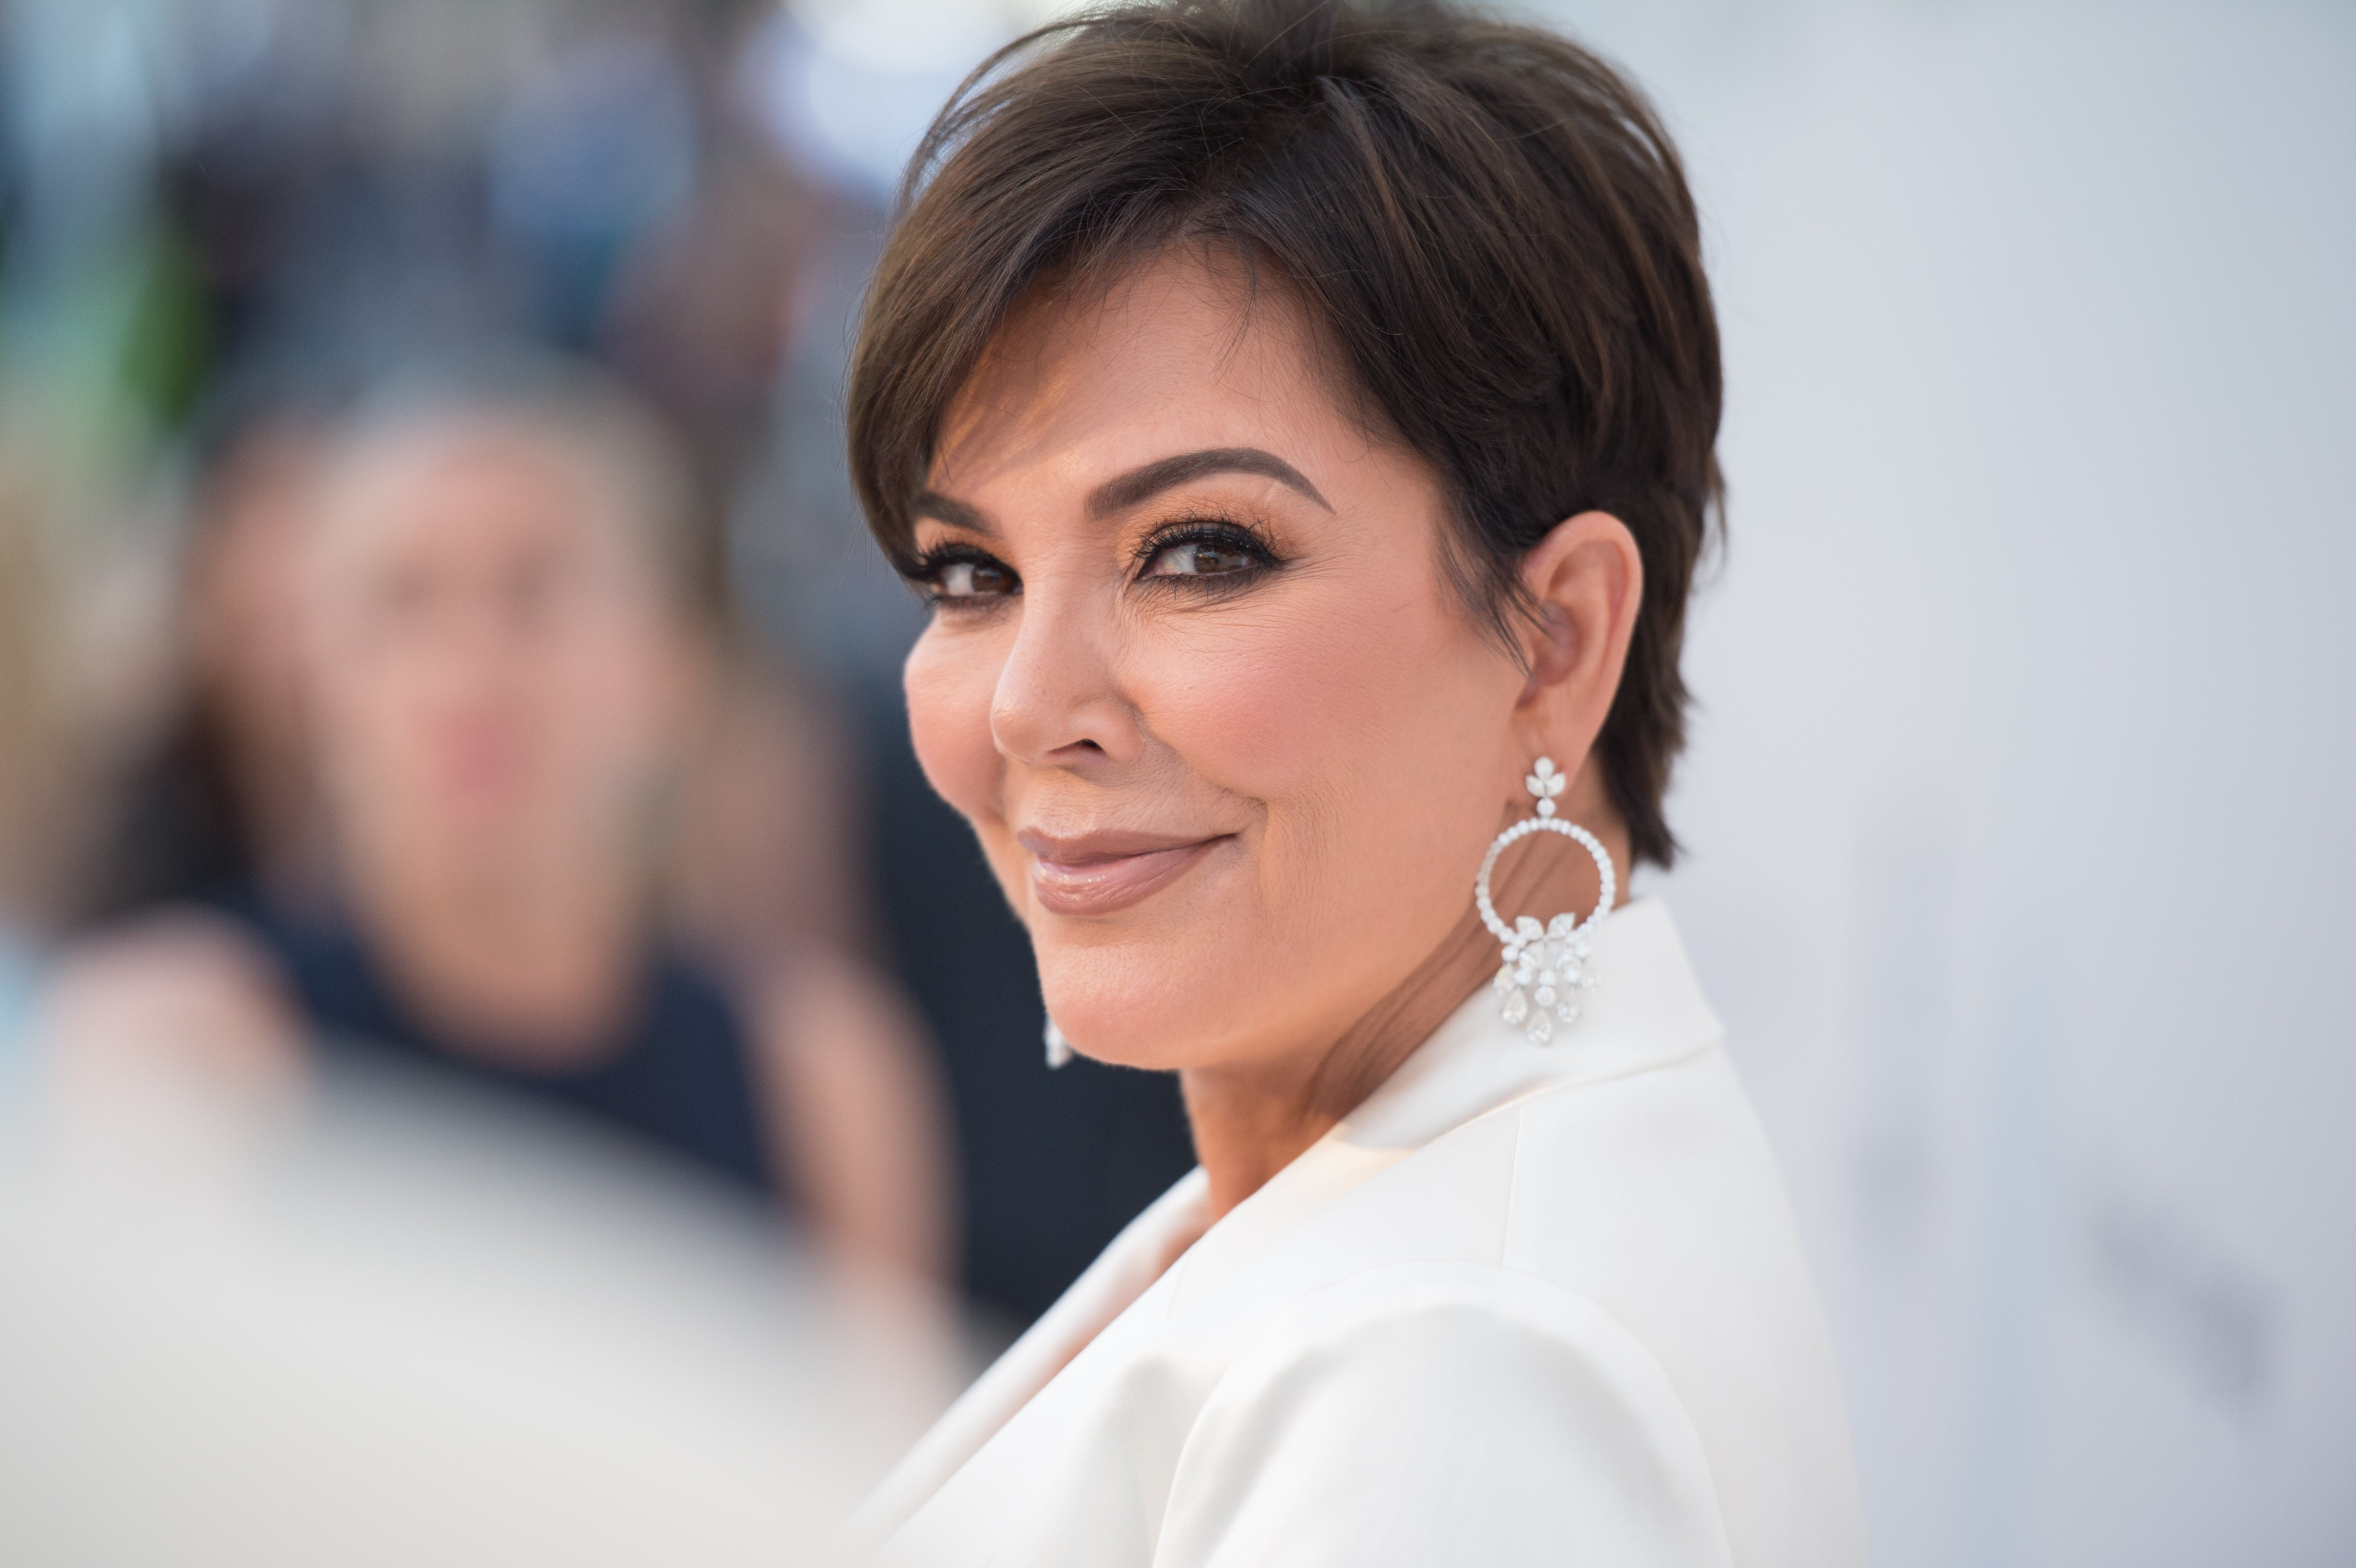 Kris Jenner pictured at the amfAR Cannes Gala 2019, Cap d'Antibes, France. | Photo: Getty Images